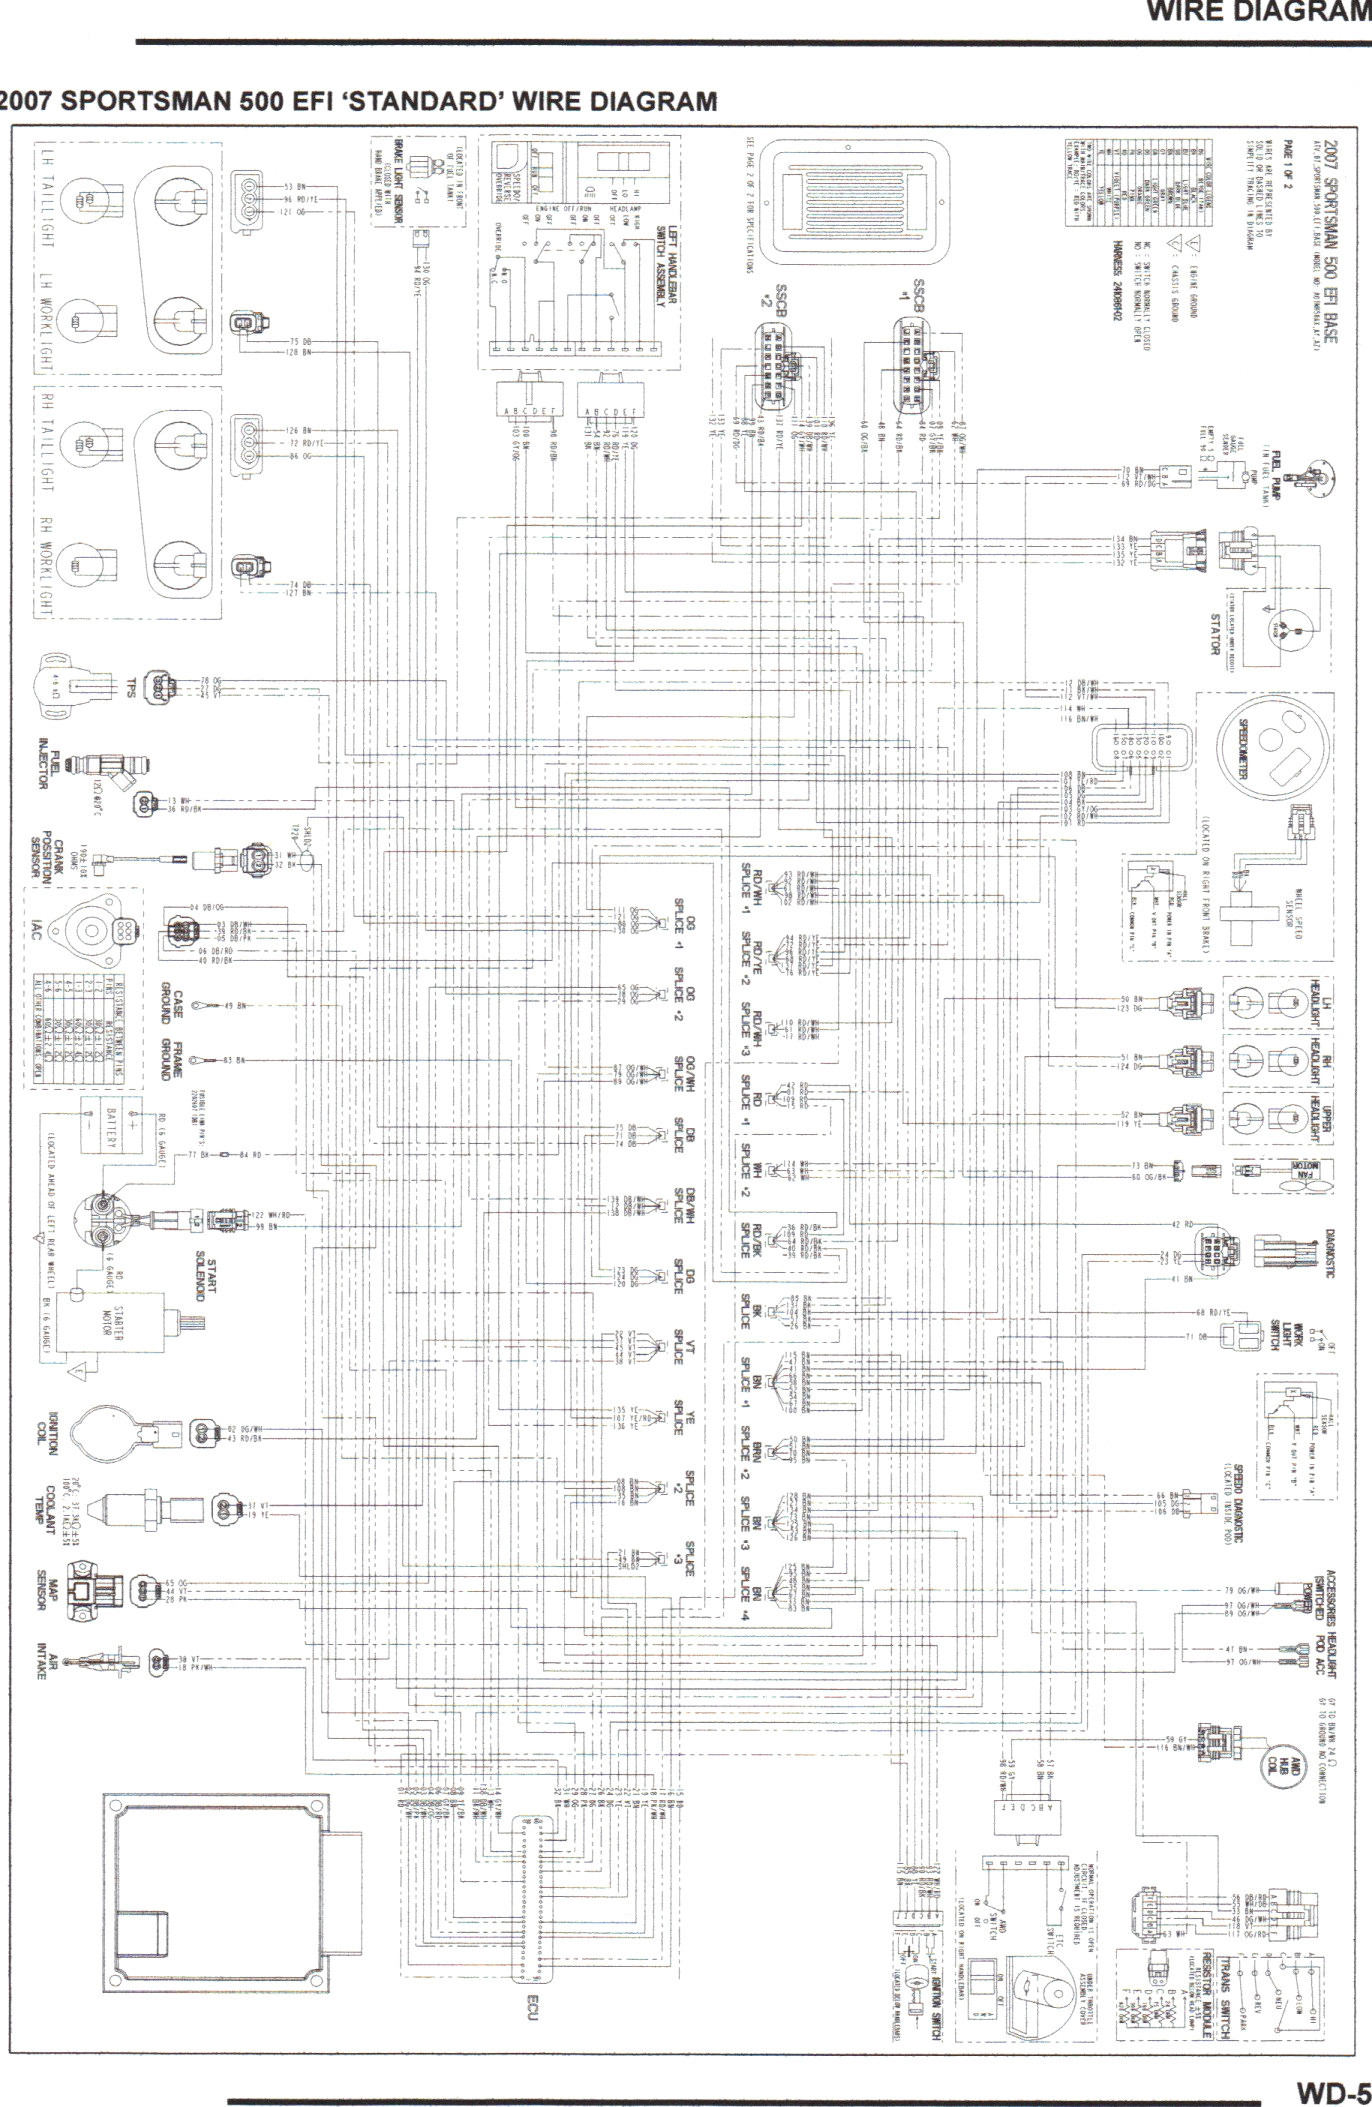 2004 Polaris Sportsman 400 Wiring Diagram - Polaris Magnum 500 Wiring  Diagram Diagrams Schematics Simple 2004